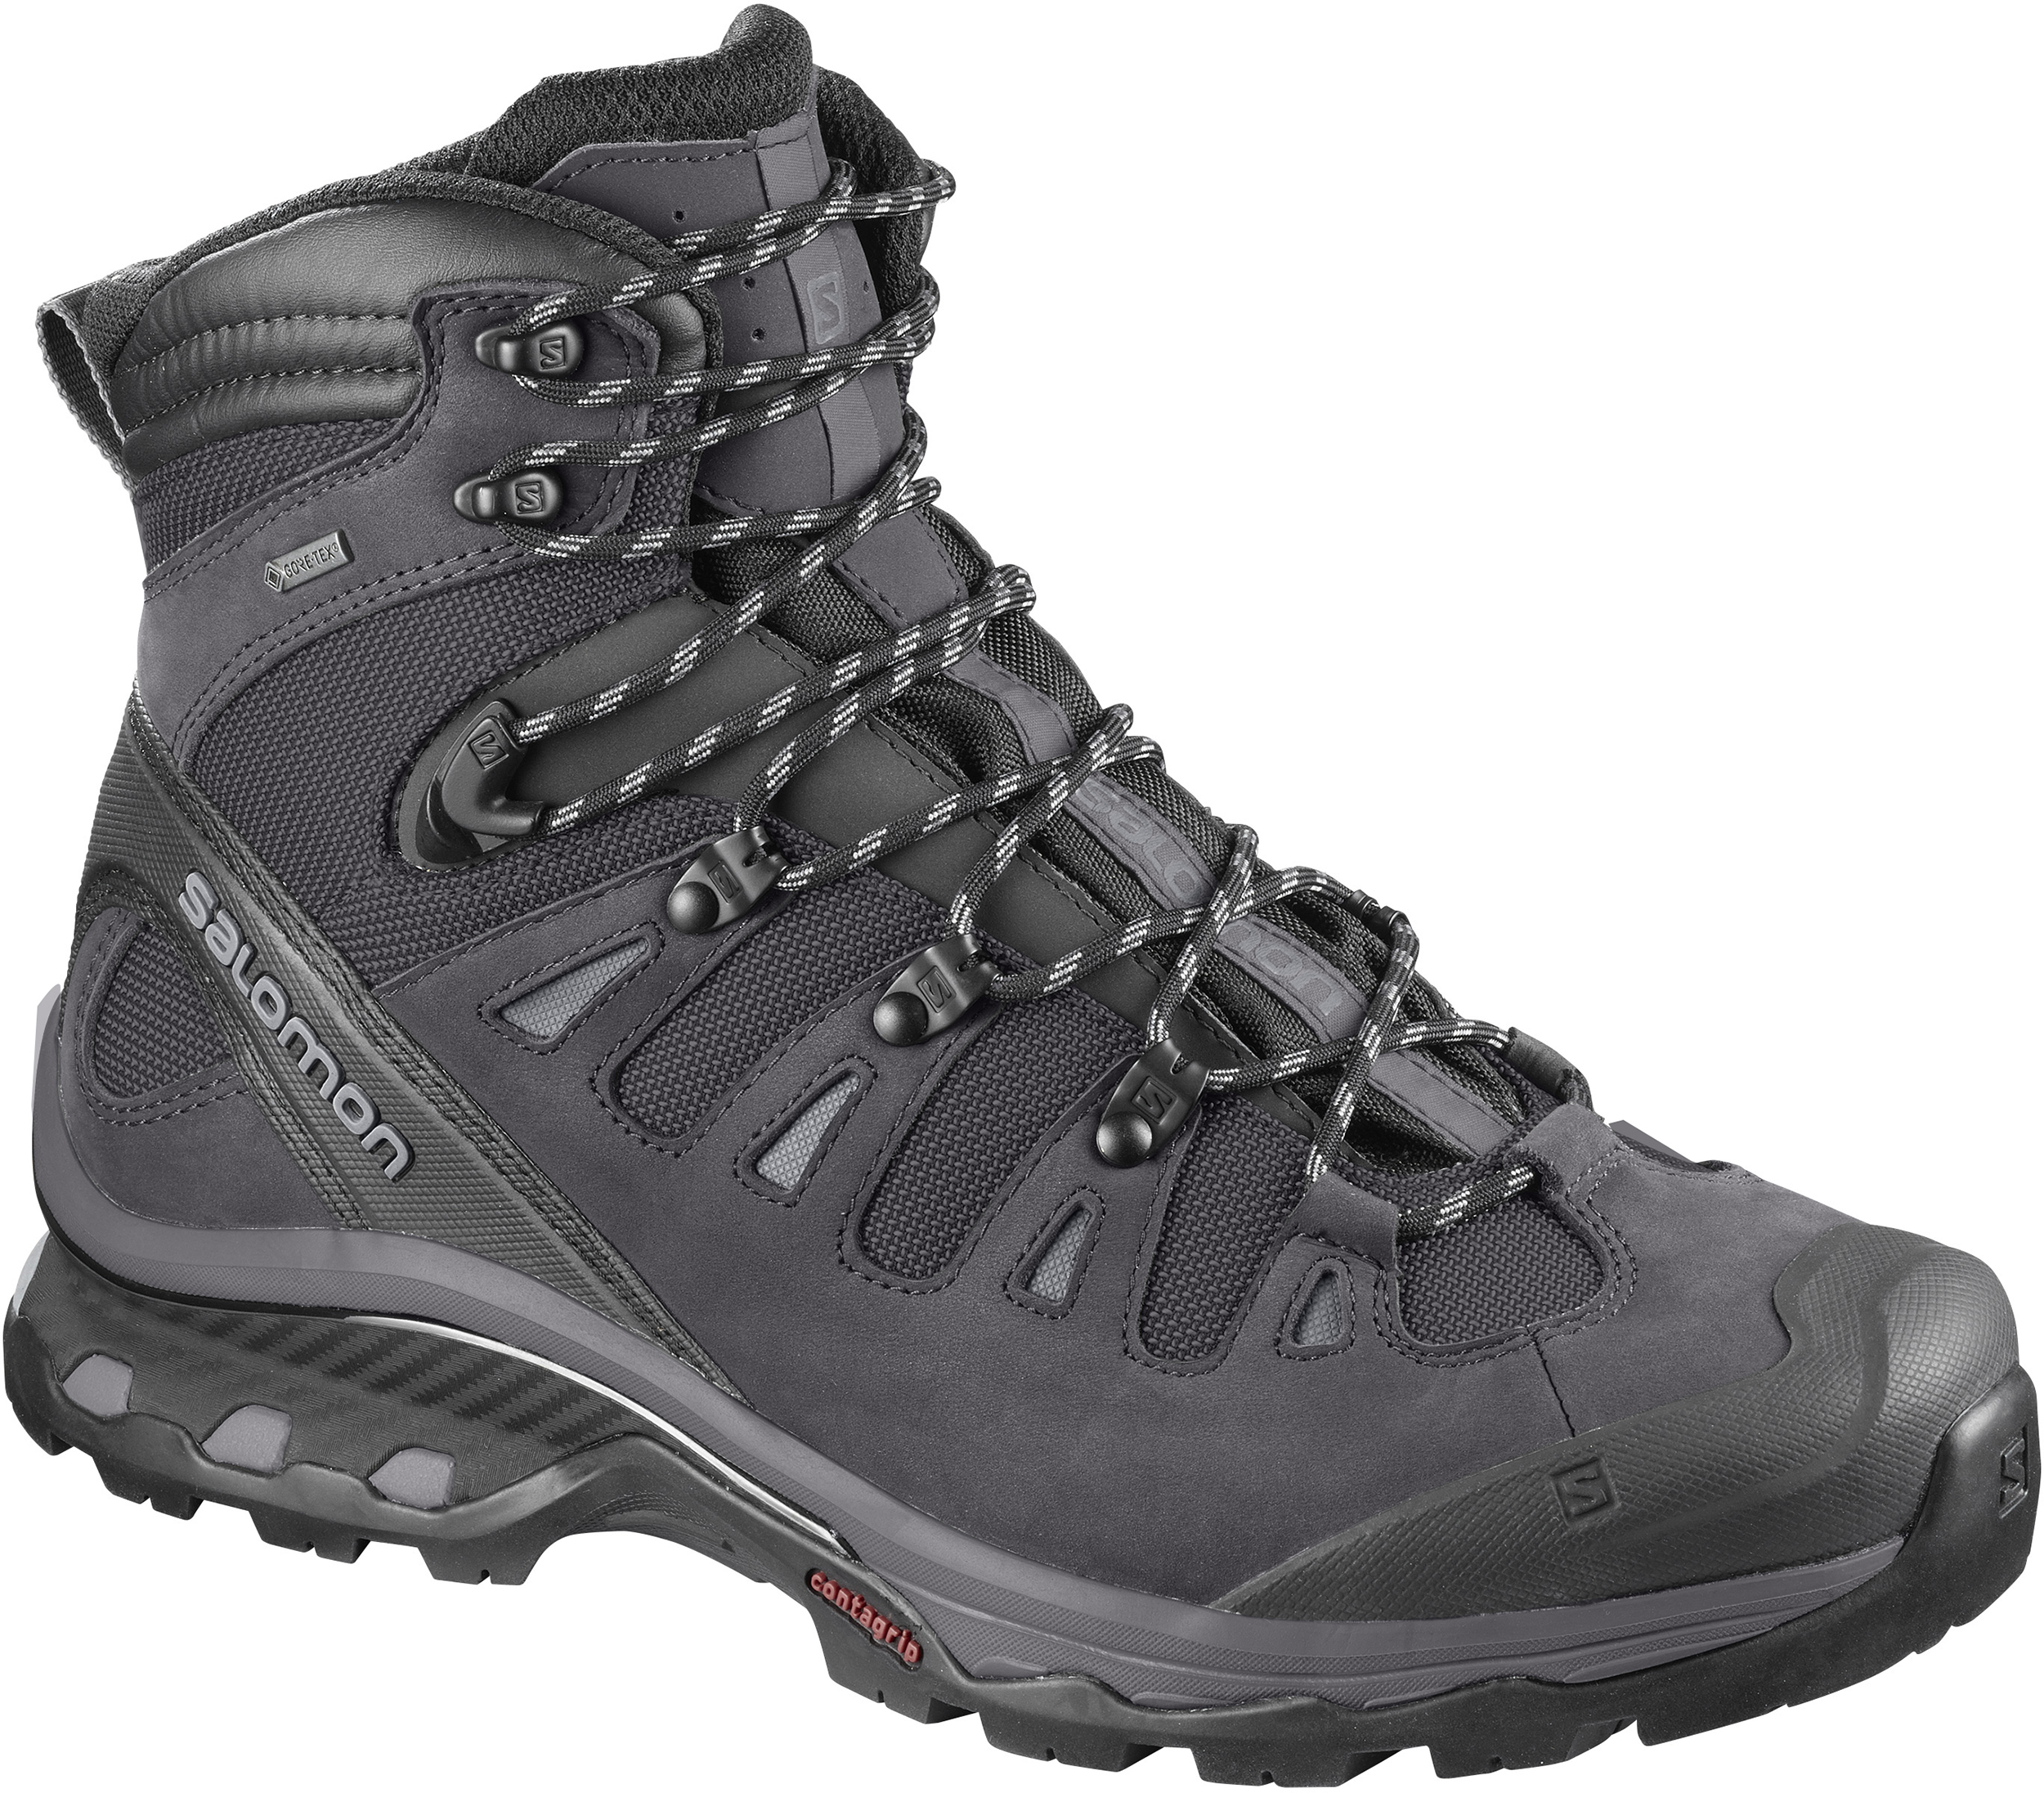 fe7a564e2cea Salomon Quest 4D 3 Gore-Tex Hiking Boots - Men s